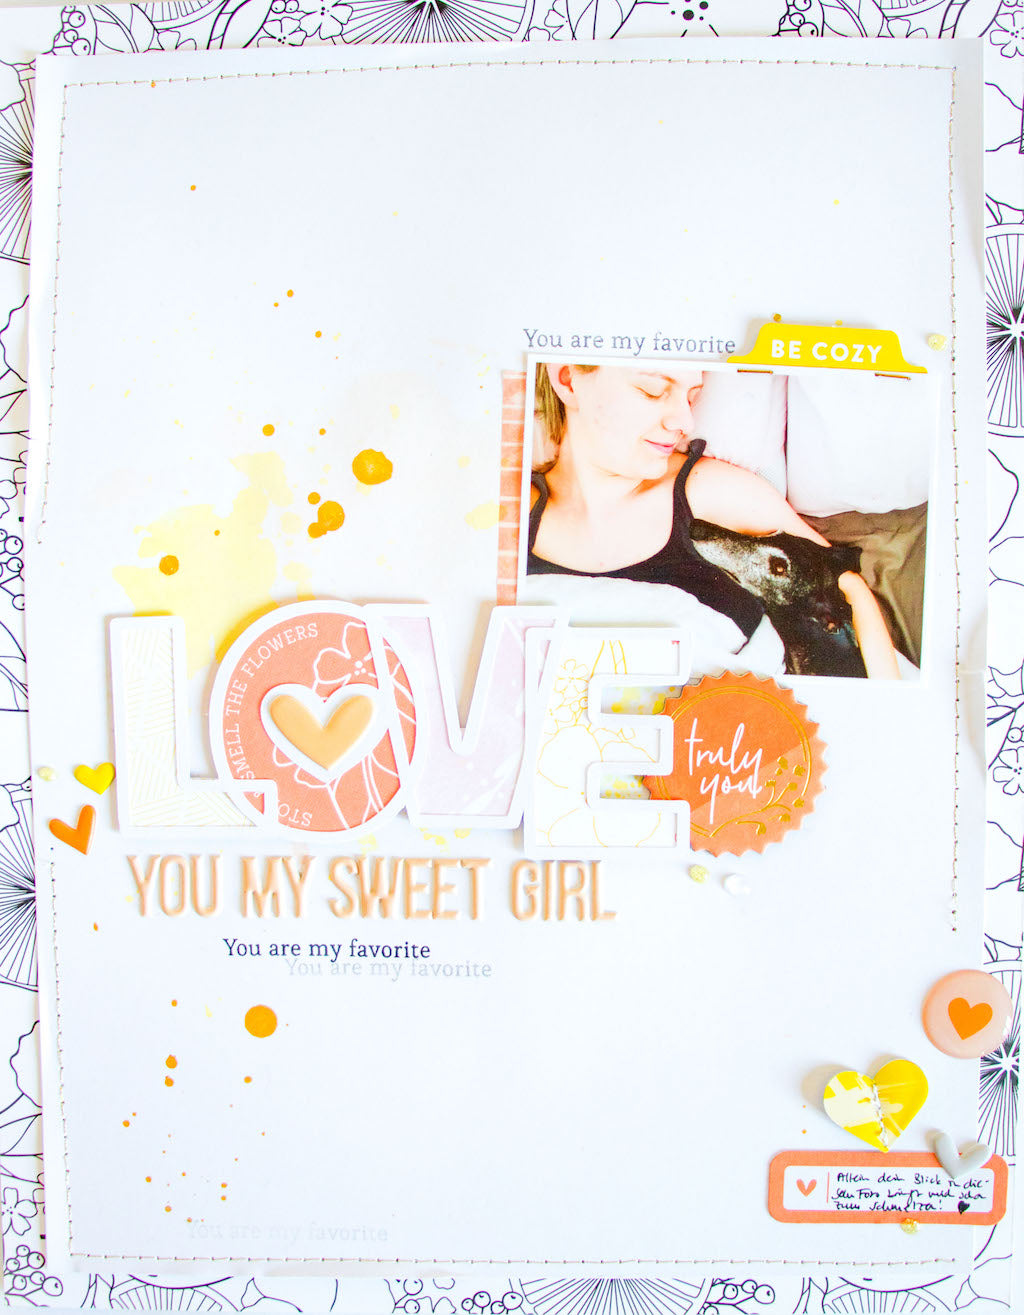 My Sweet Girl by ScatteredConfetti. // #scrapbooking #pinkfreshstudio